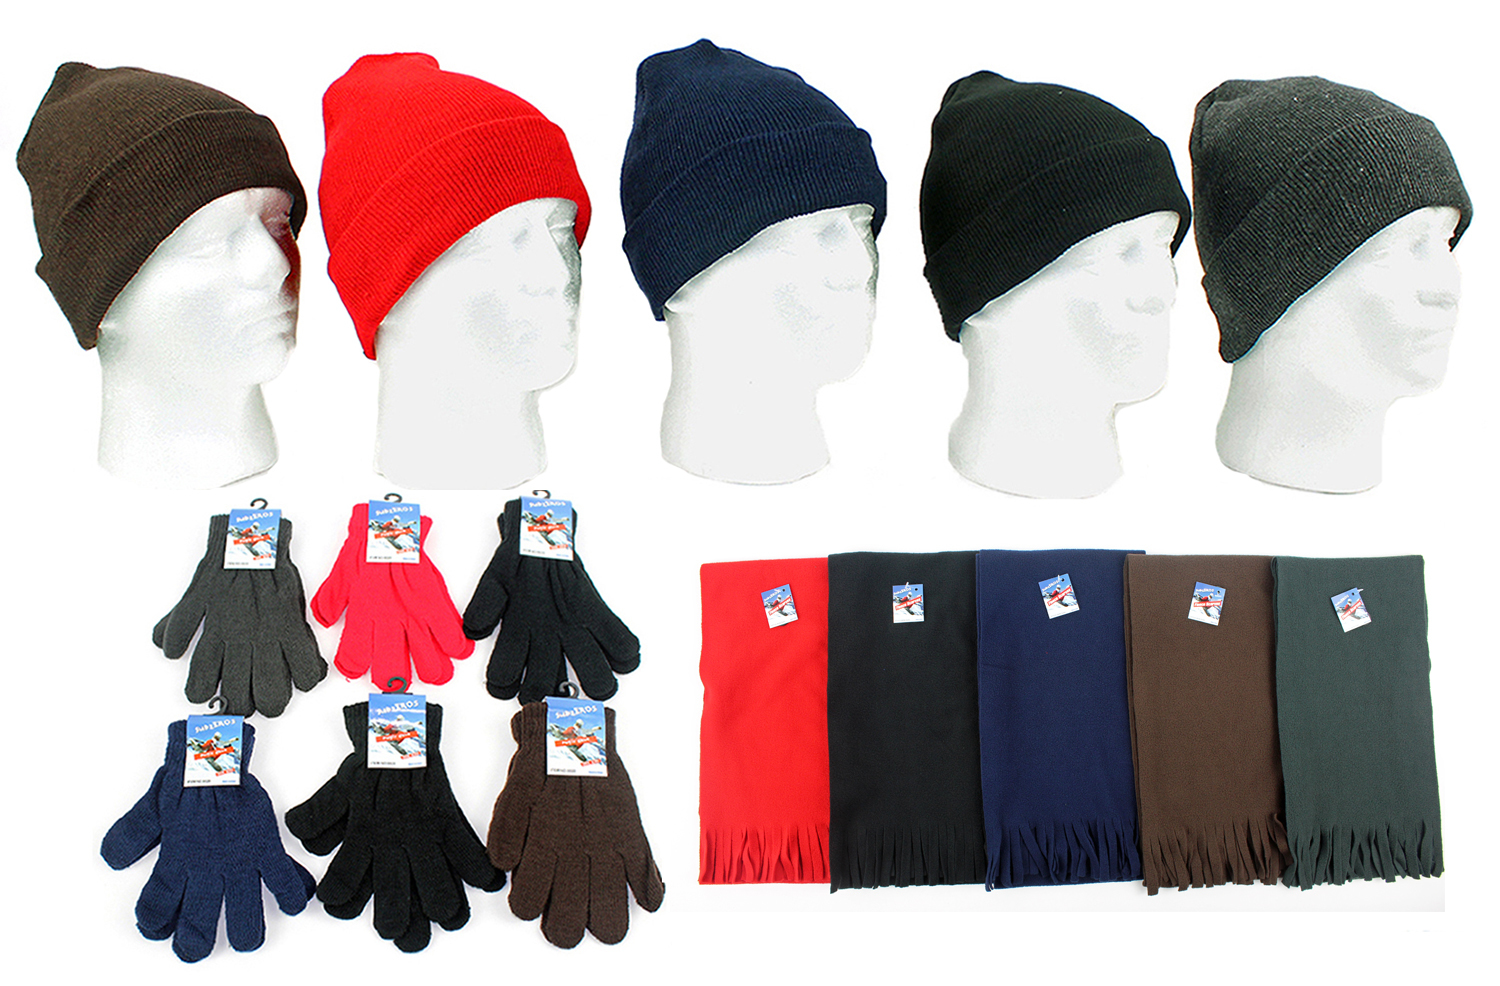 wholesale winter hats gloves and scarves sku 357153